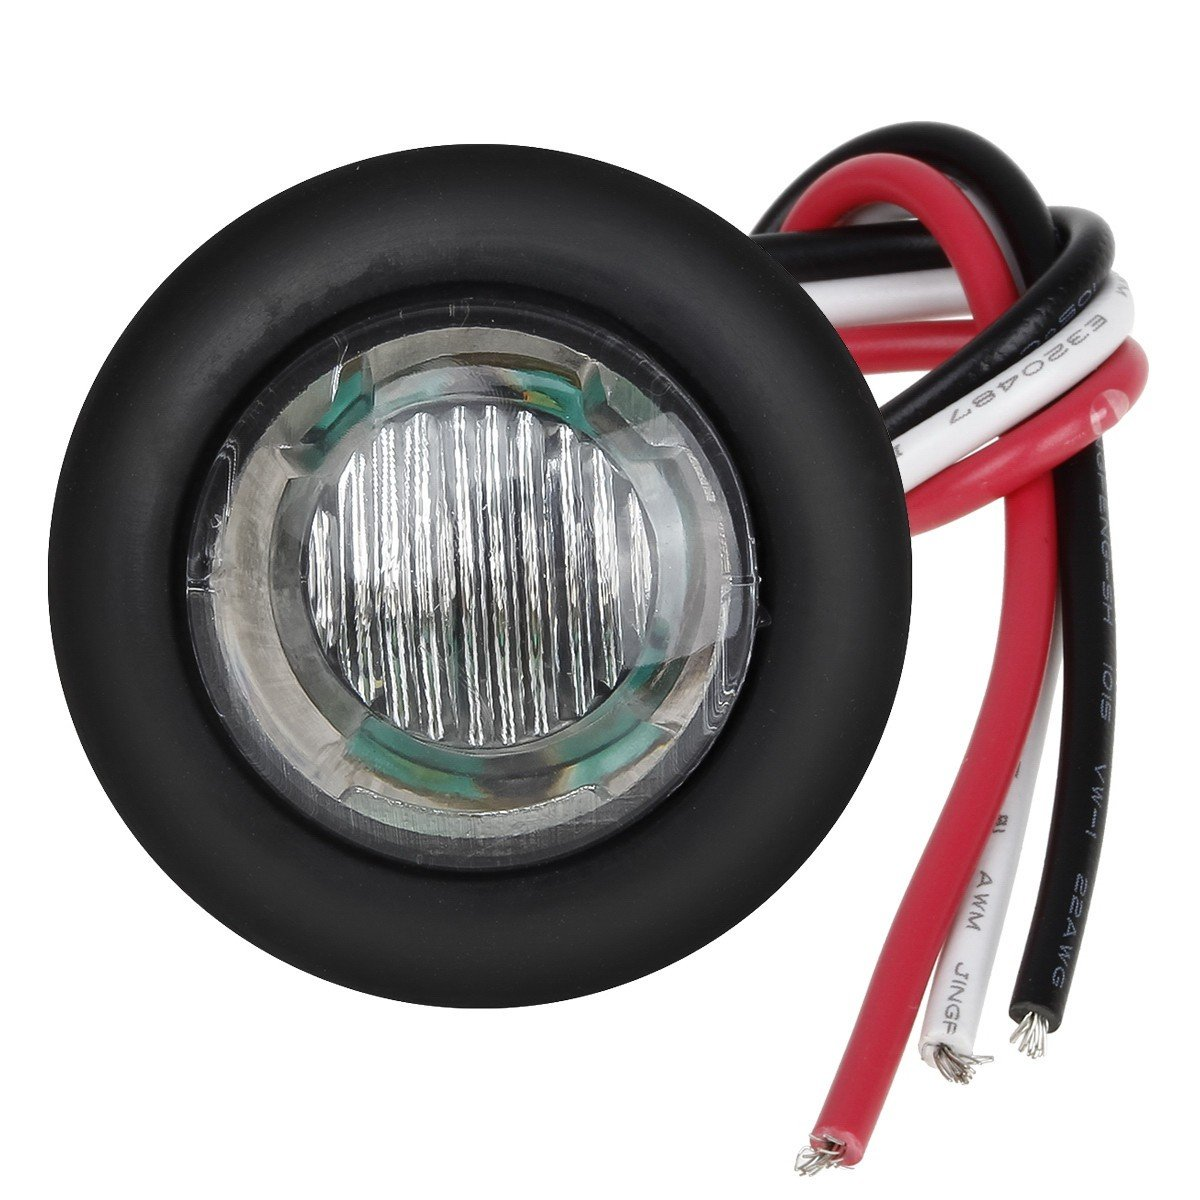 Partsam 20 x 3//4 Amber//Red Round Led Light Trailer Boat Marker Clearance High Low Power 3SMD Clear Lens 3//4 round LED combination turn signal running lamp fender lights 3-WIRE assembly Taillights